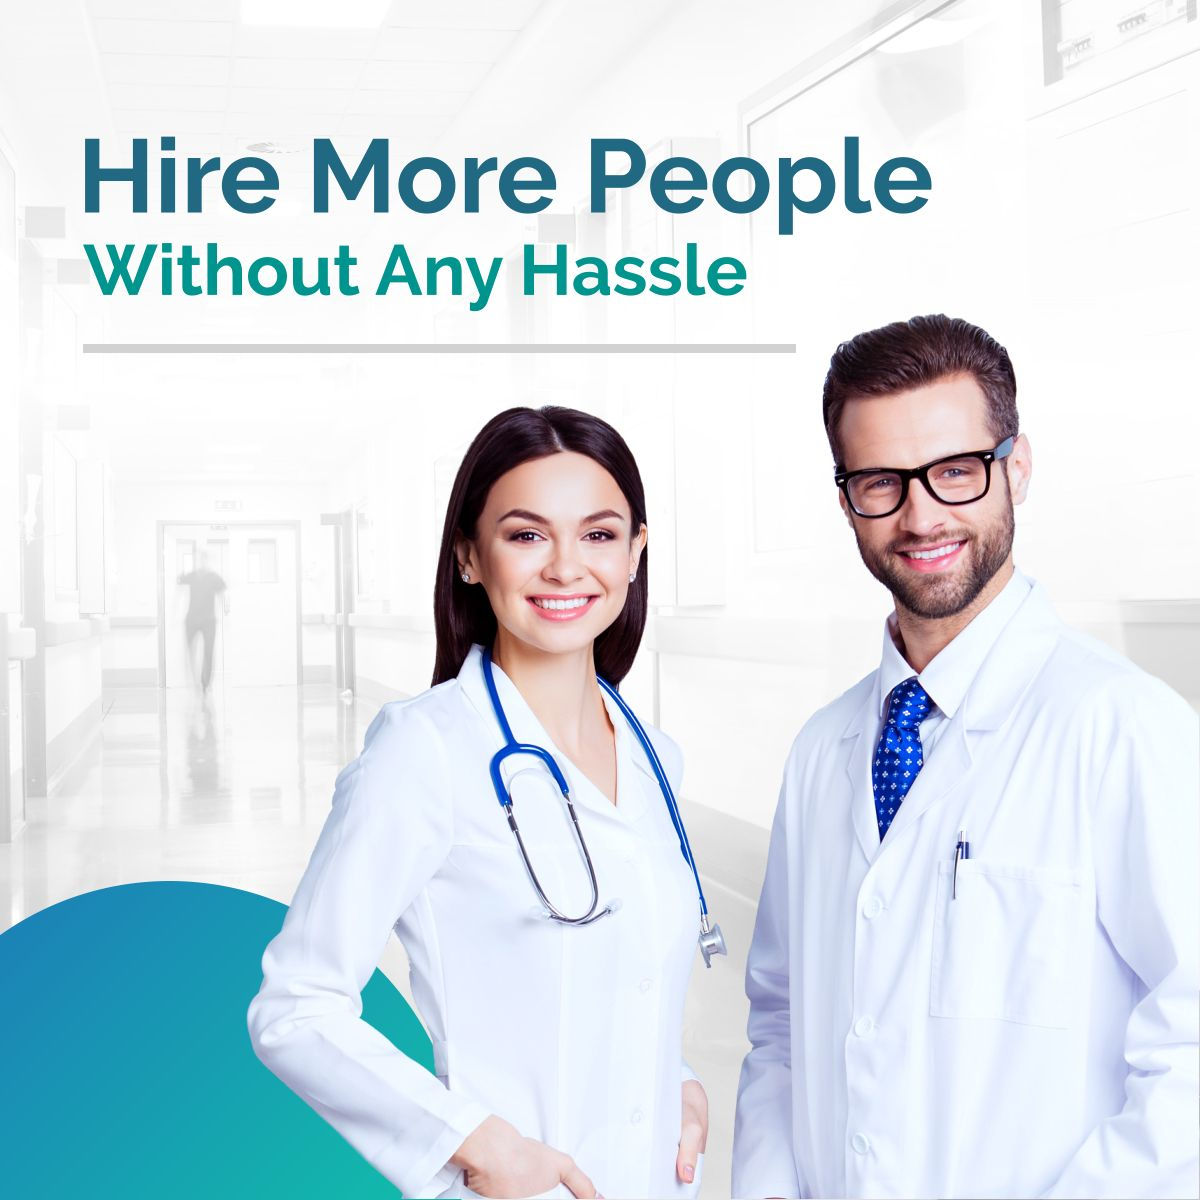 Here At Nyc Healthcare Staffing We Can Find The Right People For